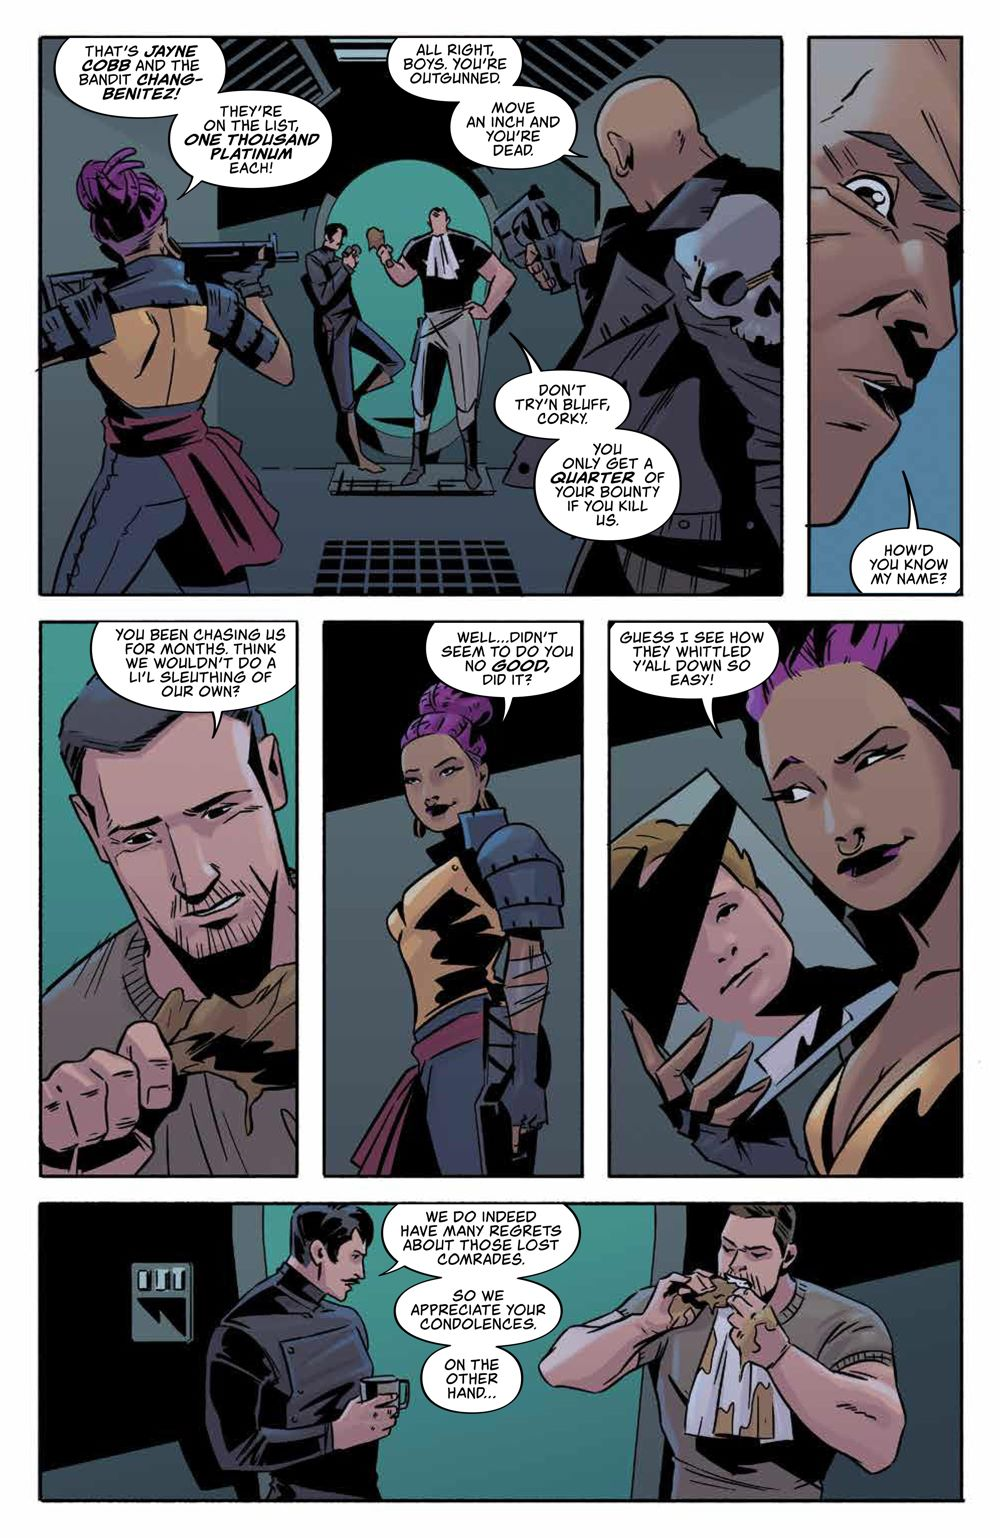 Firefly_ReturnToEarth_v1_HC_PRESS_14 ComicList Previews: FIREFLY RETURN TO THE EARTH THAT WAS VOLUME 1 HC